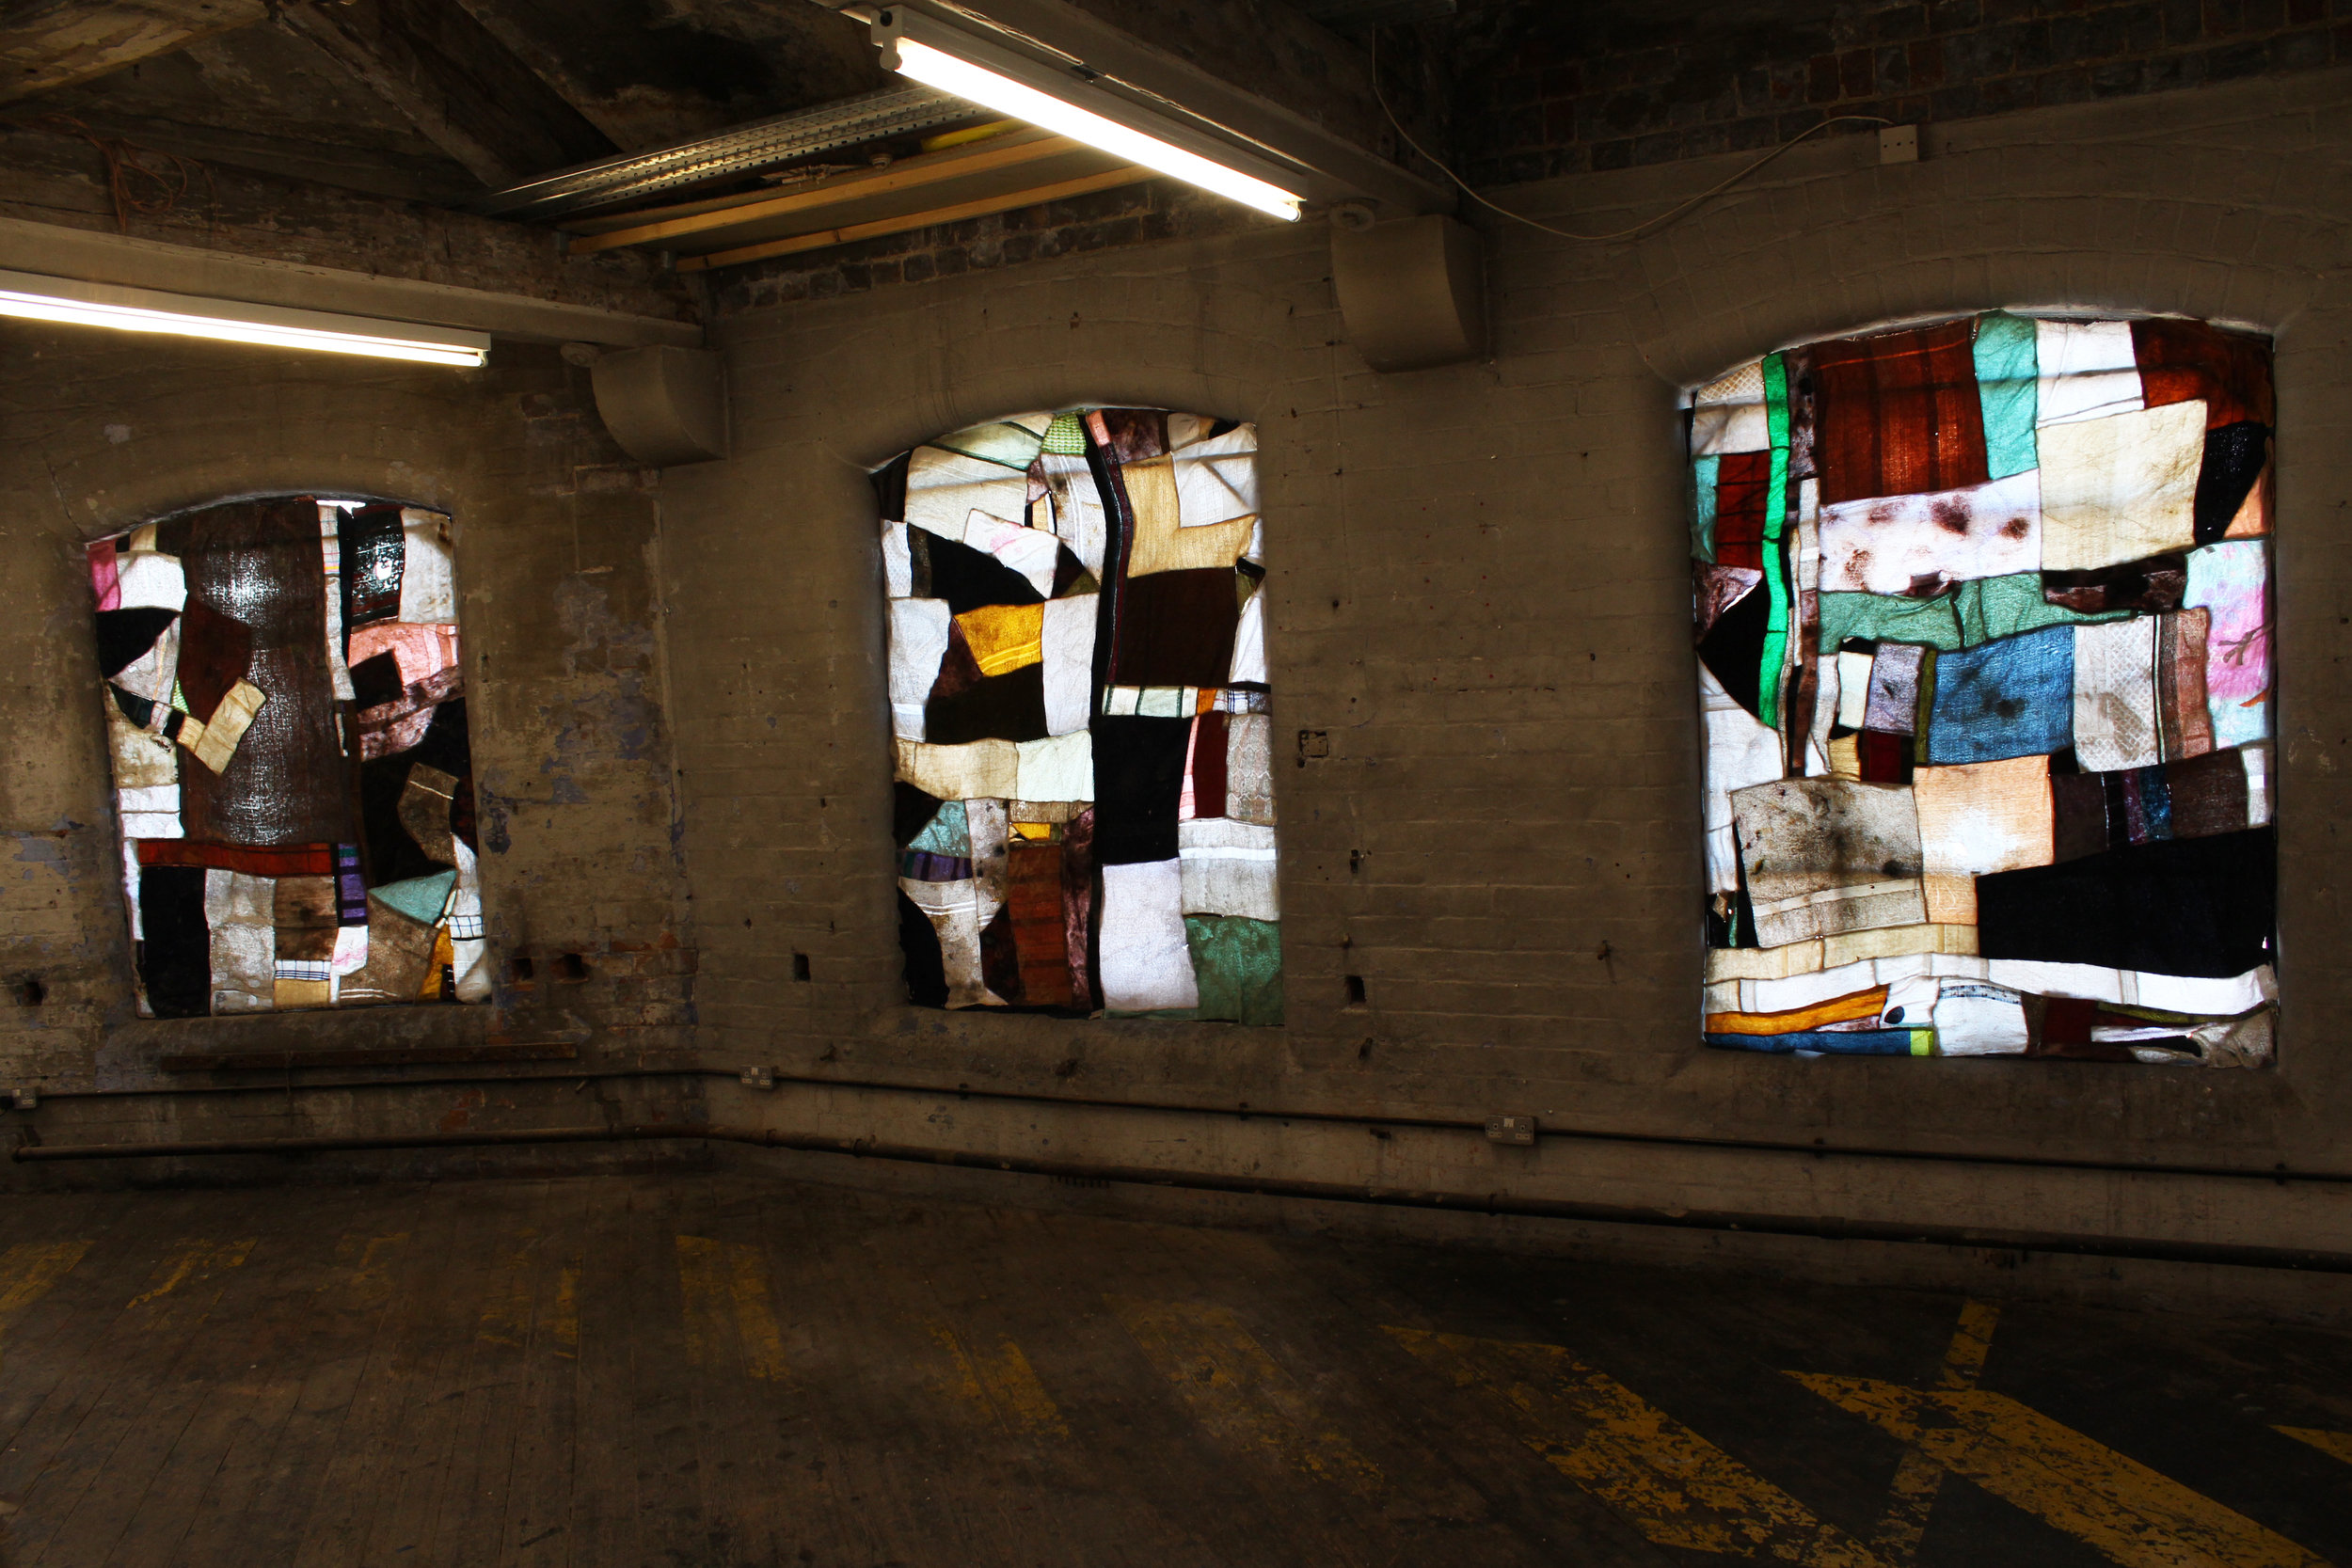 Stained Rag Windows No. 1 -3, Rags, Thread, Wax, Installed At One Thoresby Street Attic, Nottingham, November 2016